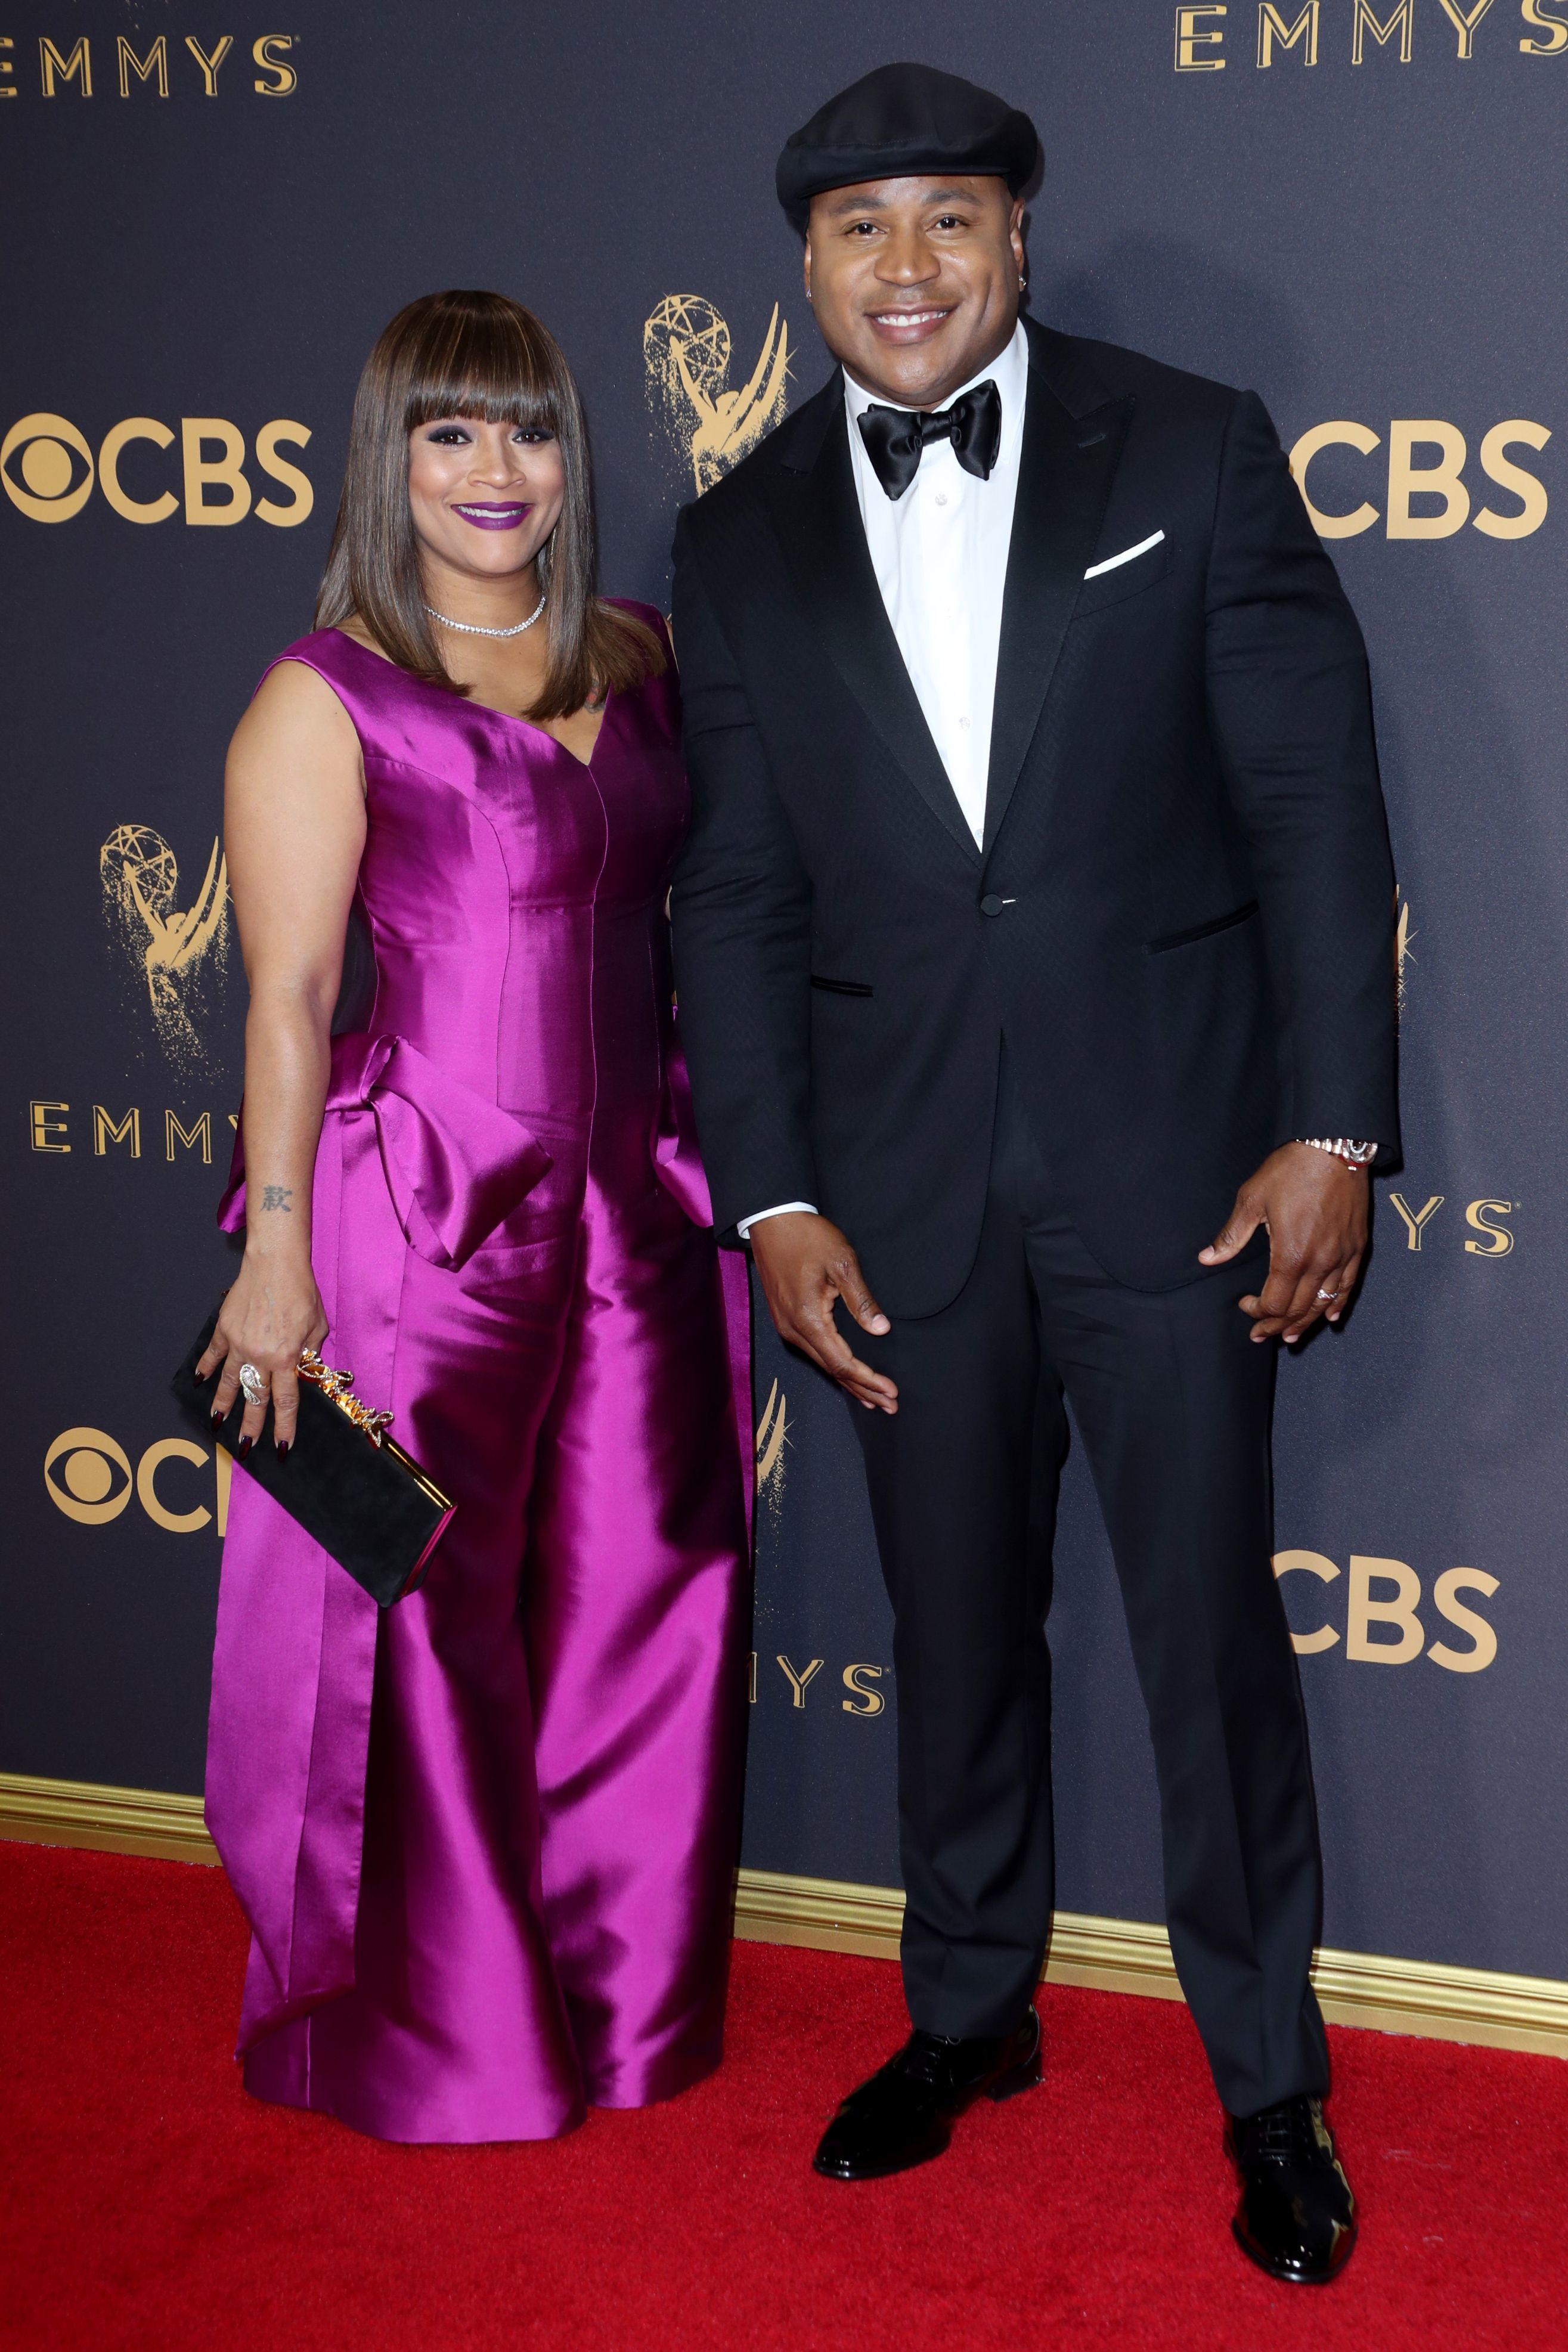 LL Cool J and his wife, Simone Smith, attend the 69th Annual Primetime Emmy Awards at the Microsoft Theater in Los Angeles on Sept. 17, 2017.